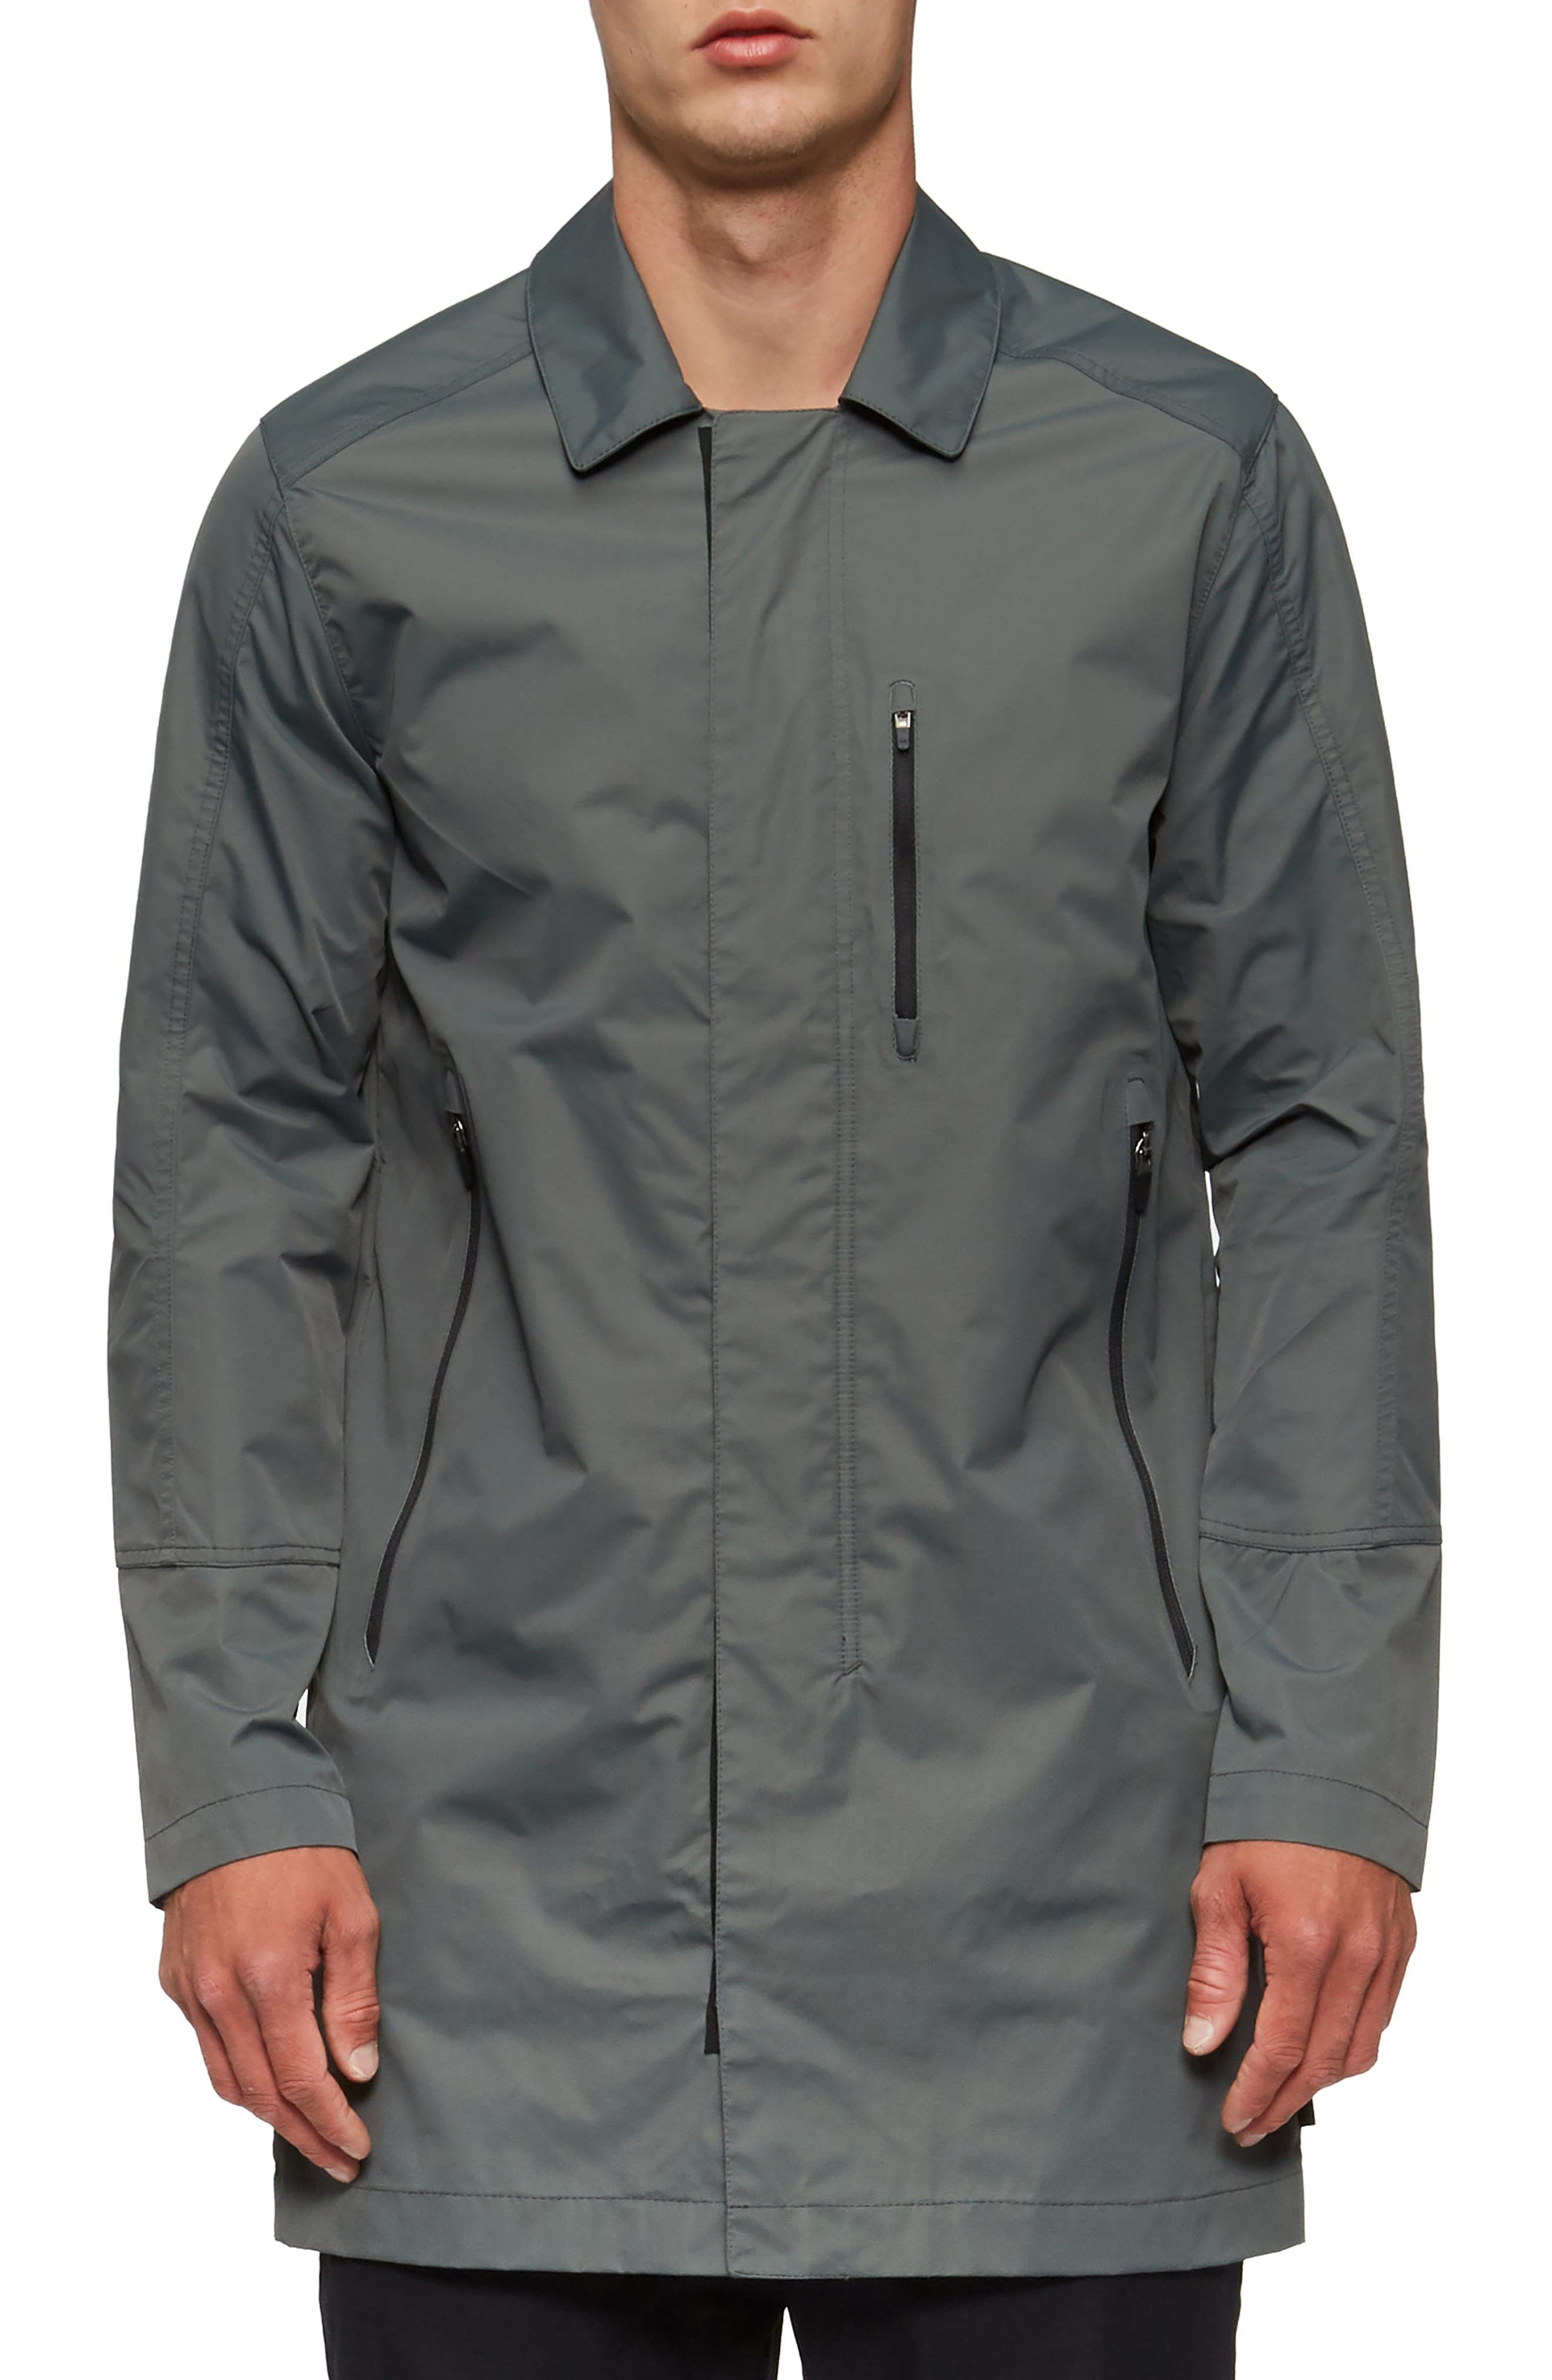 Main Image - TAVIK Deckard Weather Resistant Trench Coat